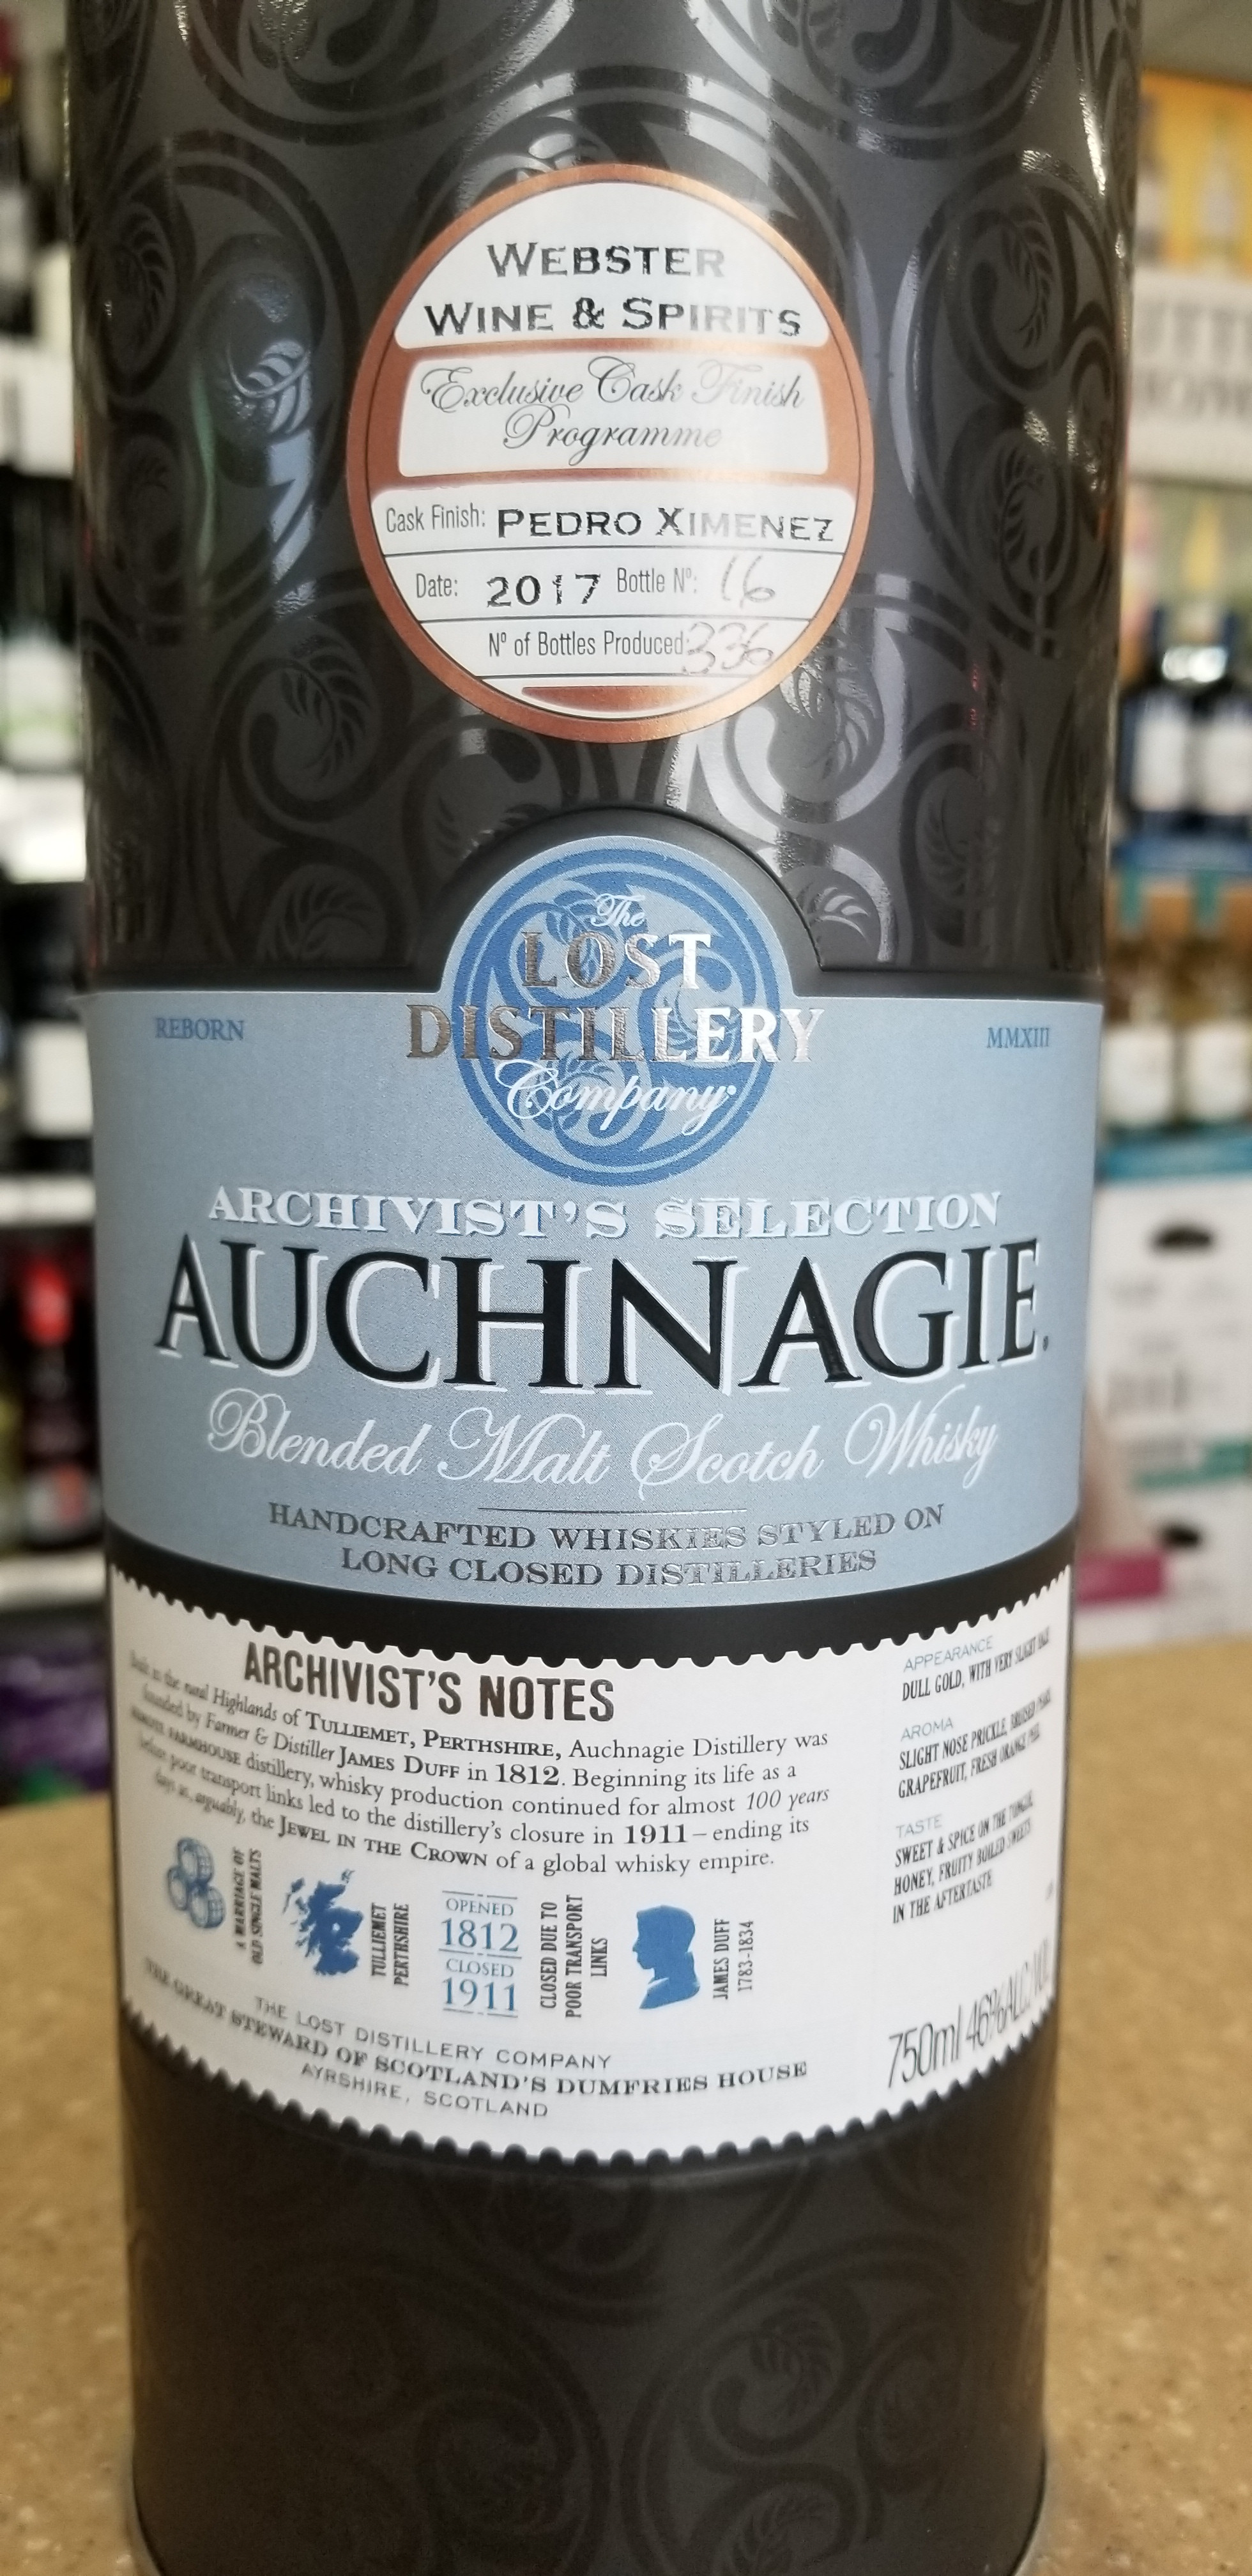 Lost Distillery Auchnagie Pedro Ximenez Finished Blended Malt Scotch-Store Selection 750ml